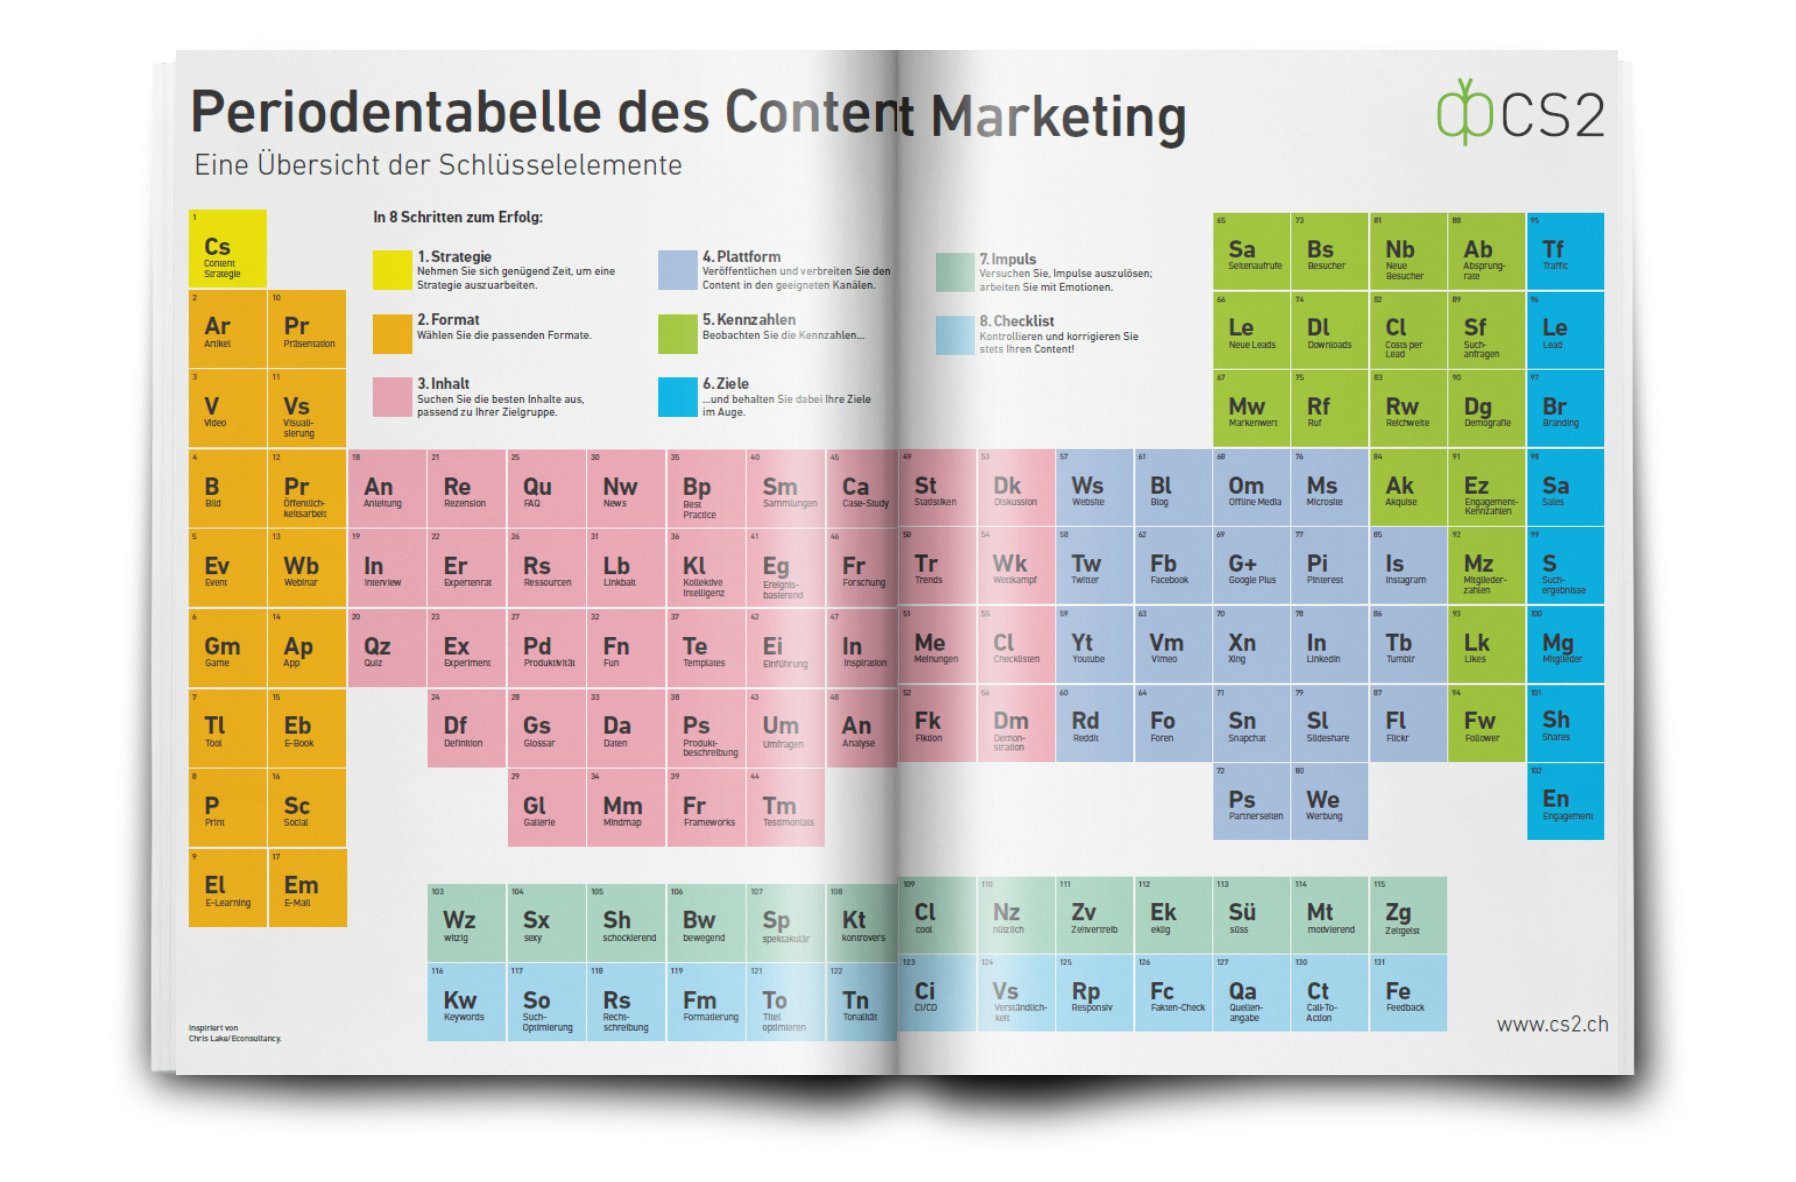 Periodentabelle des Content Marketing